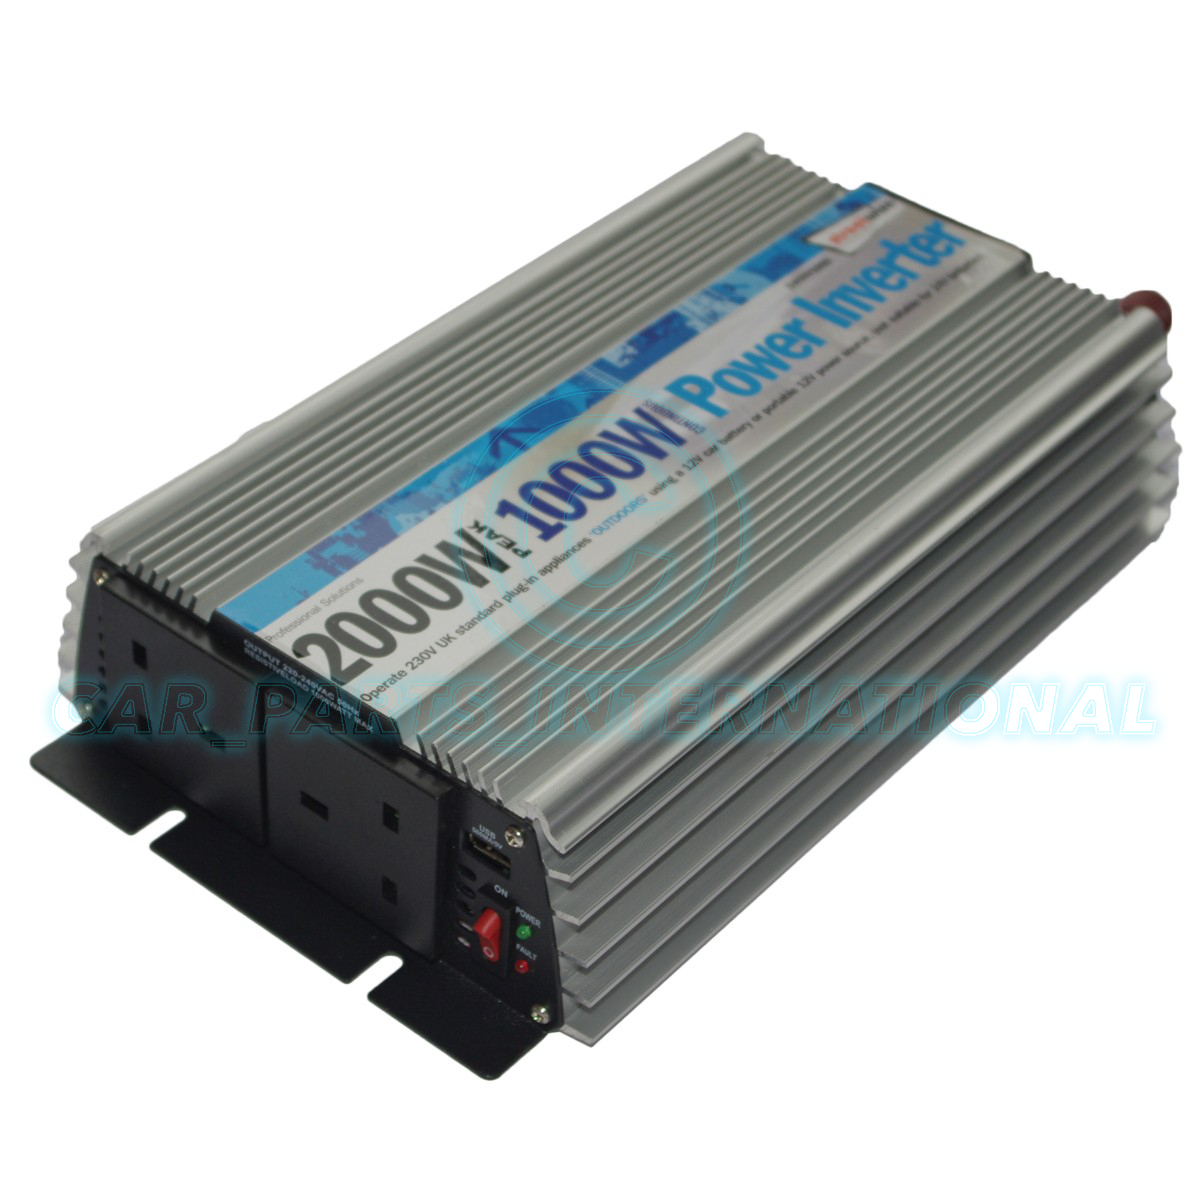 #397992 12v DC To 230v AC Power Inverter Converter 1000W (2000W  Best 4823 Inverter Window Ac photos with 1200x1200 px on helpvideos.info - Air Conditioners, Air Coolers and more